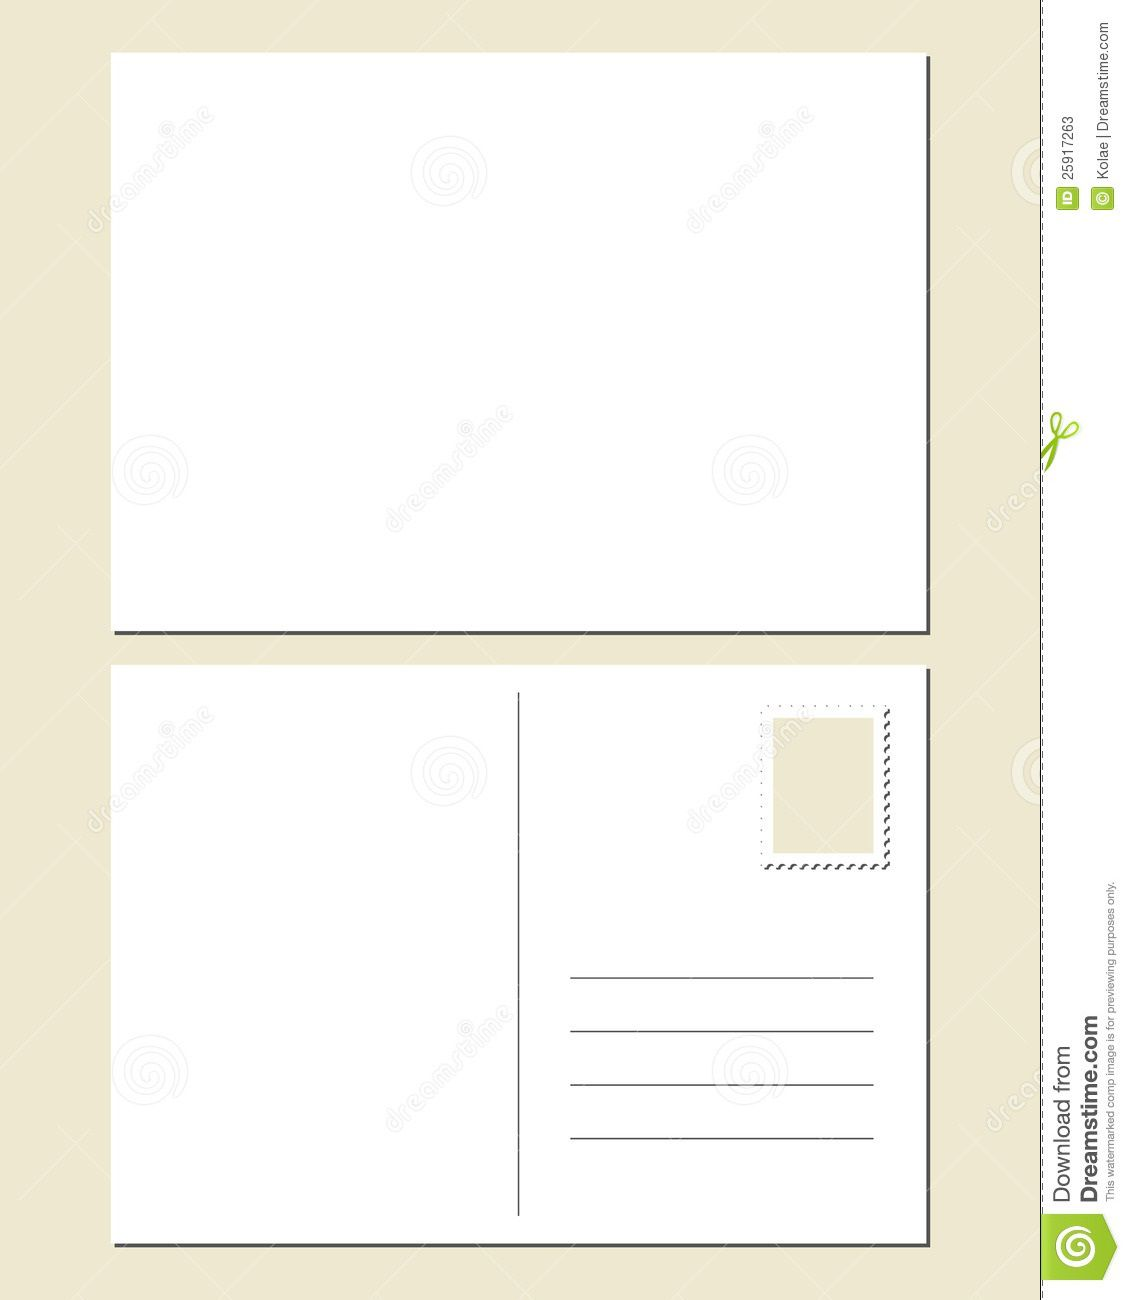 007 Breathtaking Postcard Front And Back Template Free Image  To SchoolFull